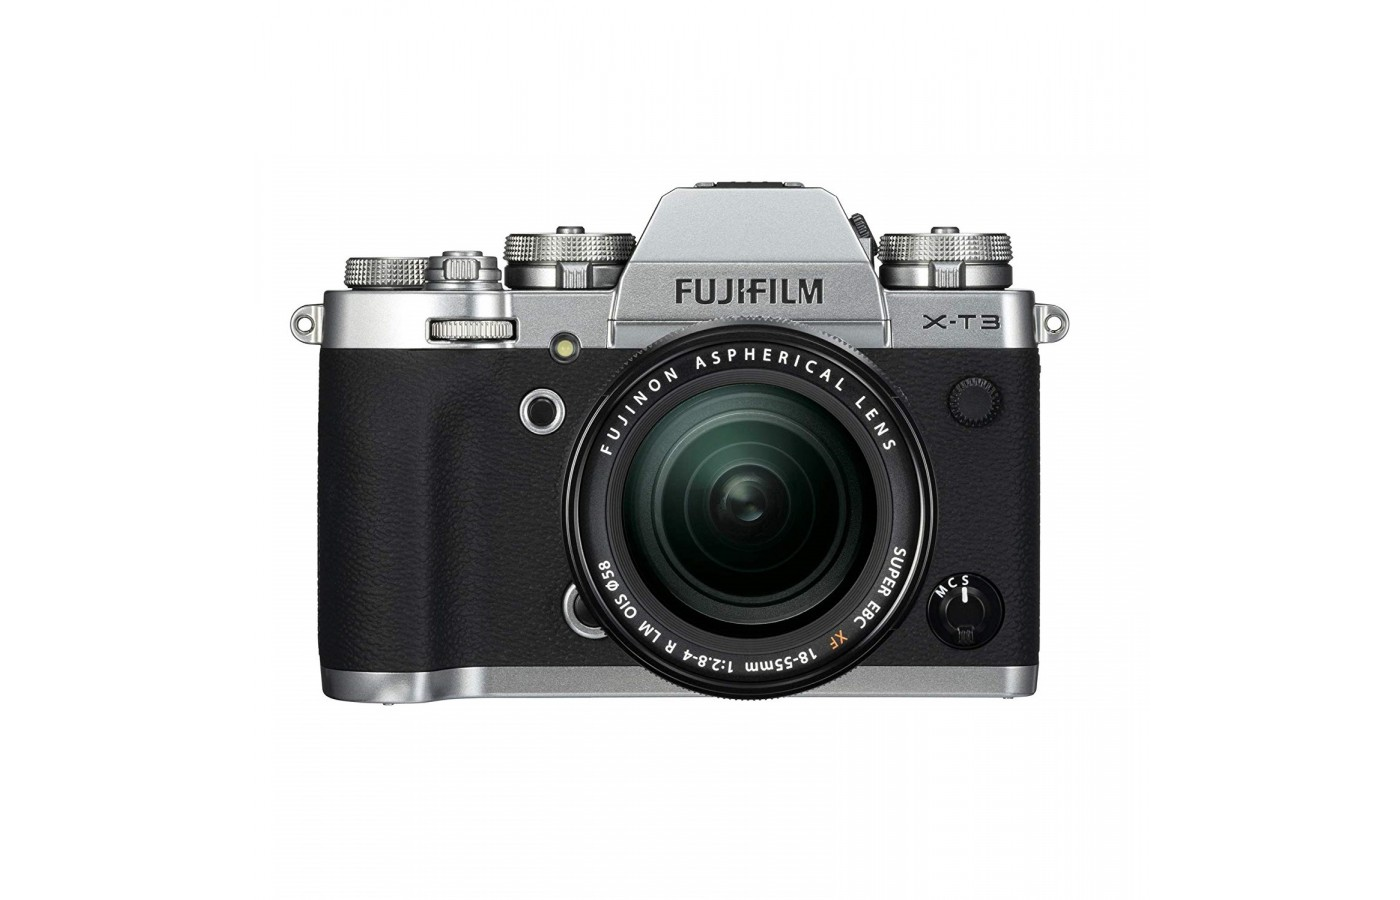 The Fujifilm X-T3 offers a X-Trans CMOS 4 sensor for better tracking of movements.